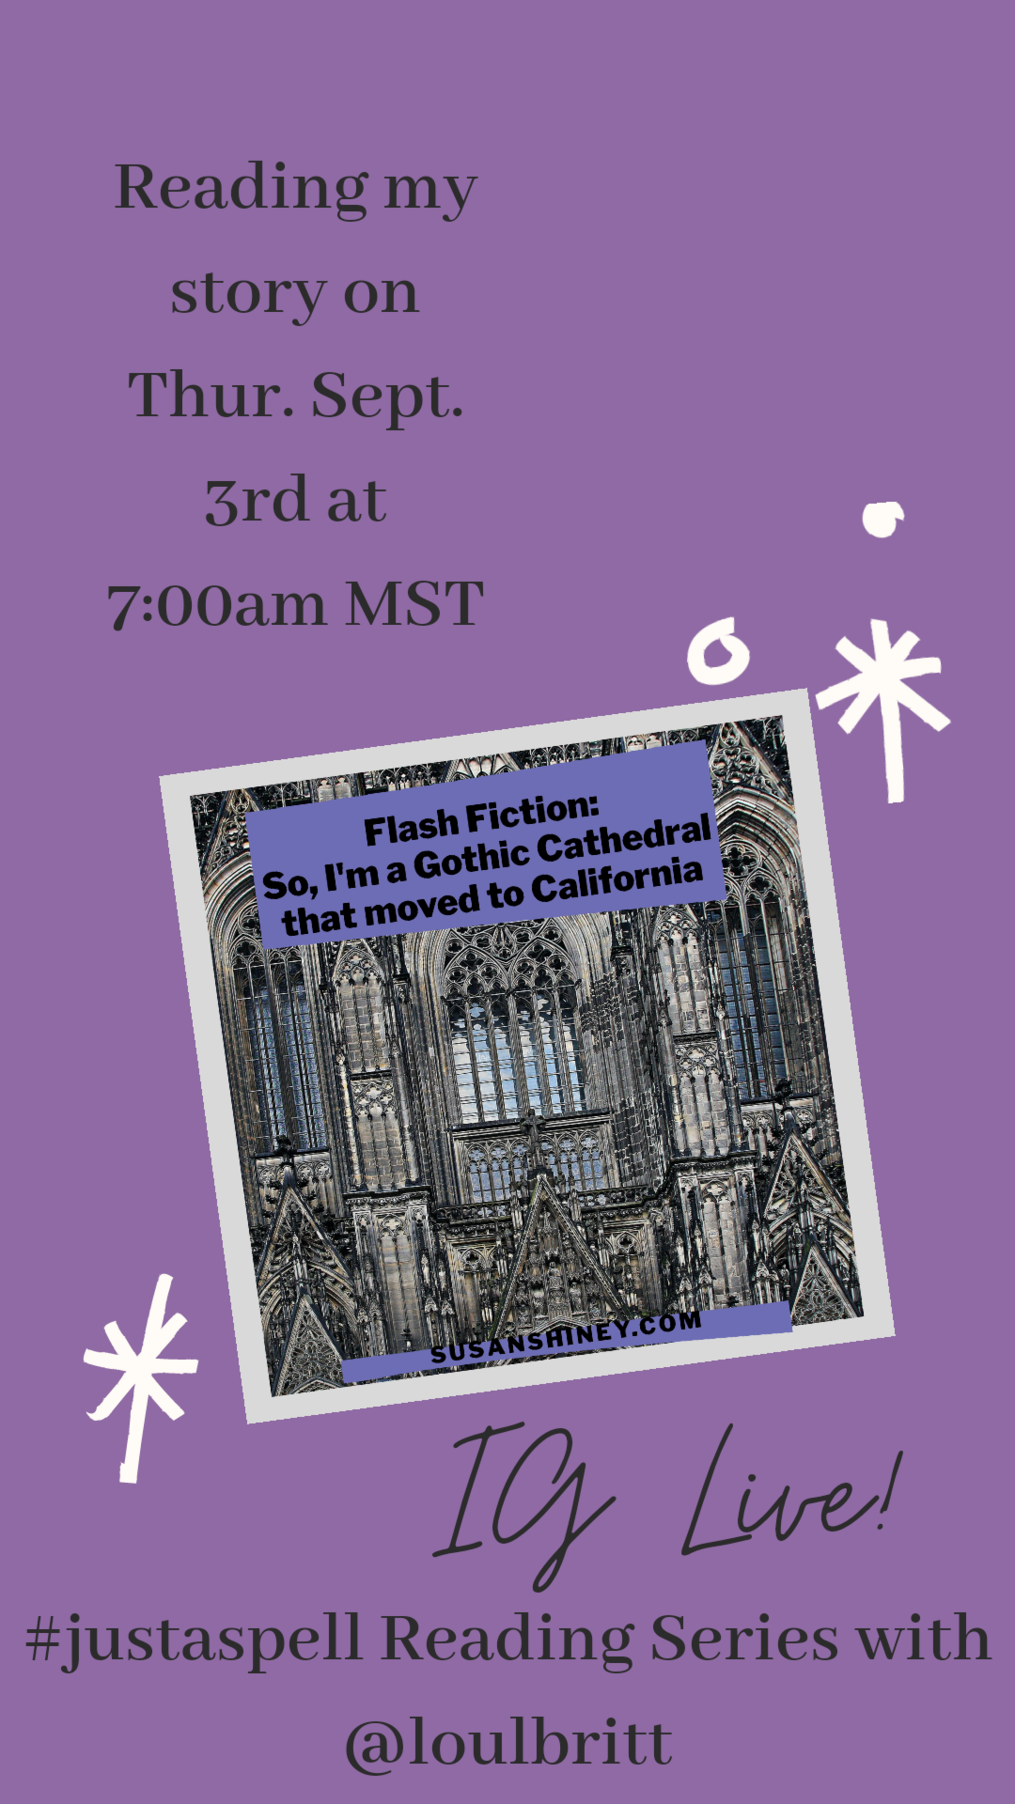 Canva-Instagram-Stories-template-to-practice-for-IG-Live-for-Writers-Instagram-Live-for-writers-susan-shiney-to-promote-my-participation-in-a-reading-series-of-my-work